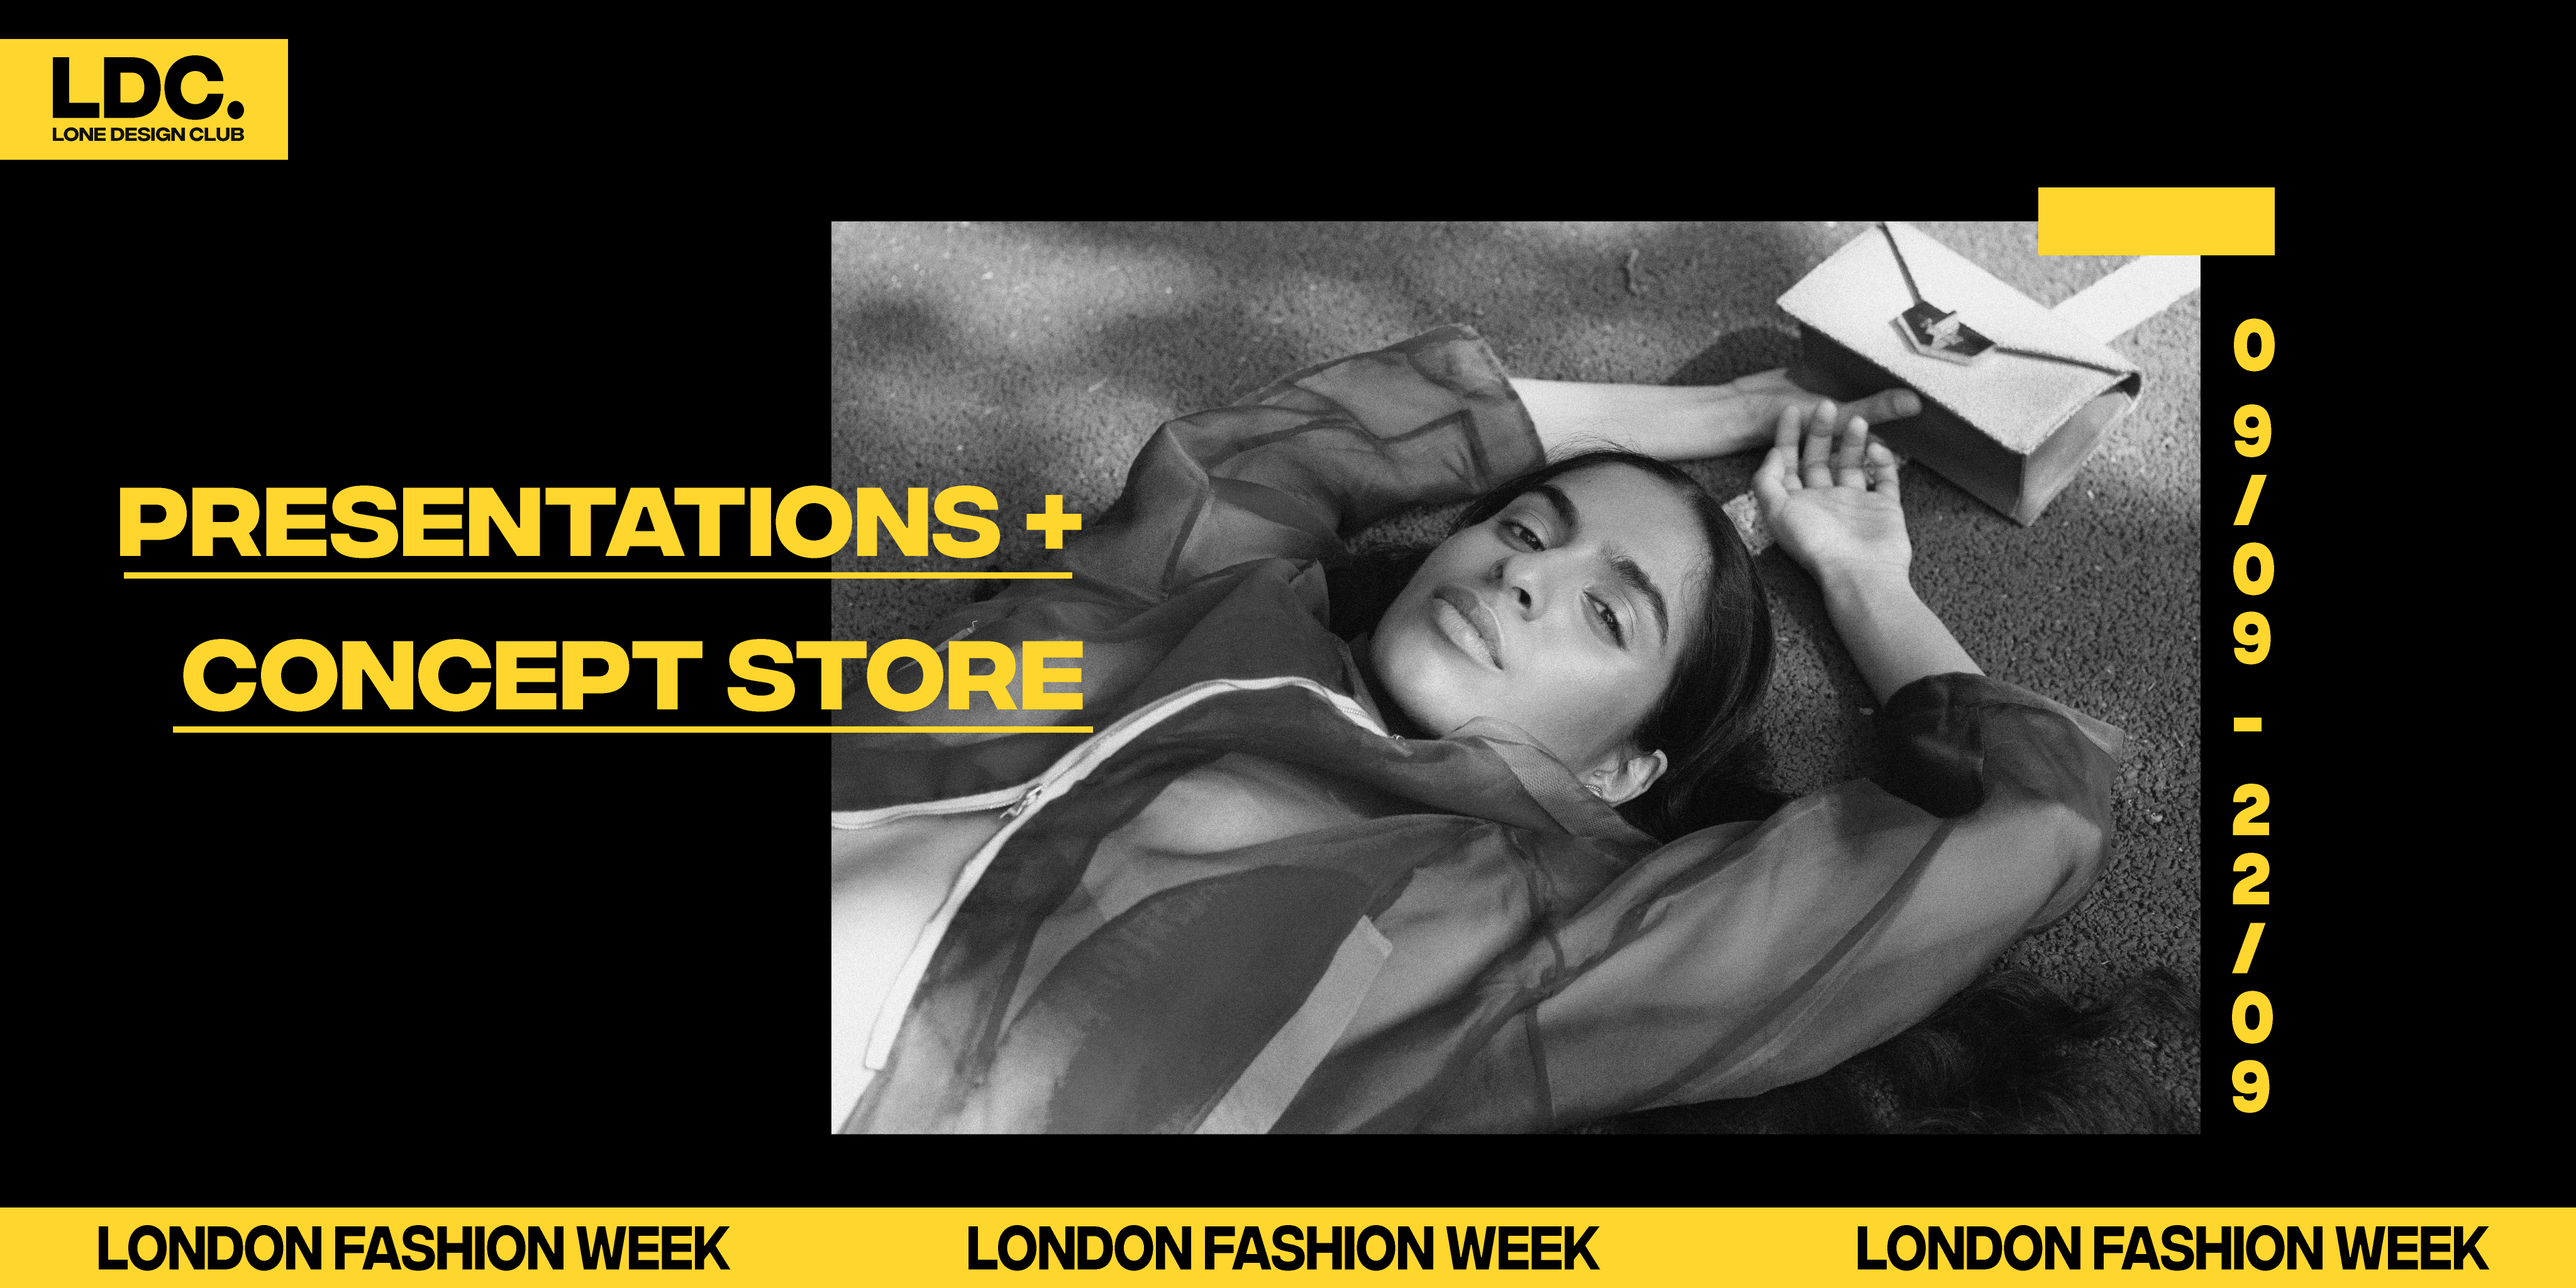 LONDON FASHION WEEK: Lone Design Club presents Presentations + Concept Store